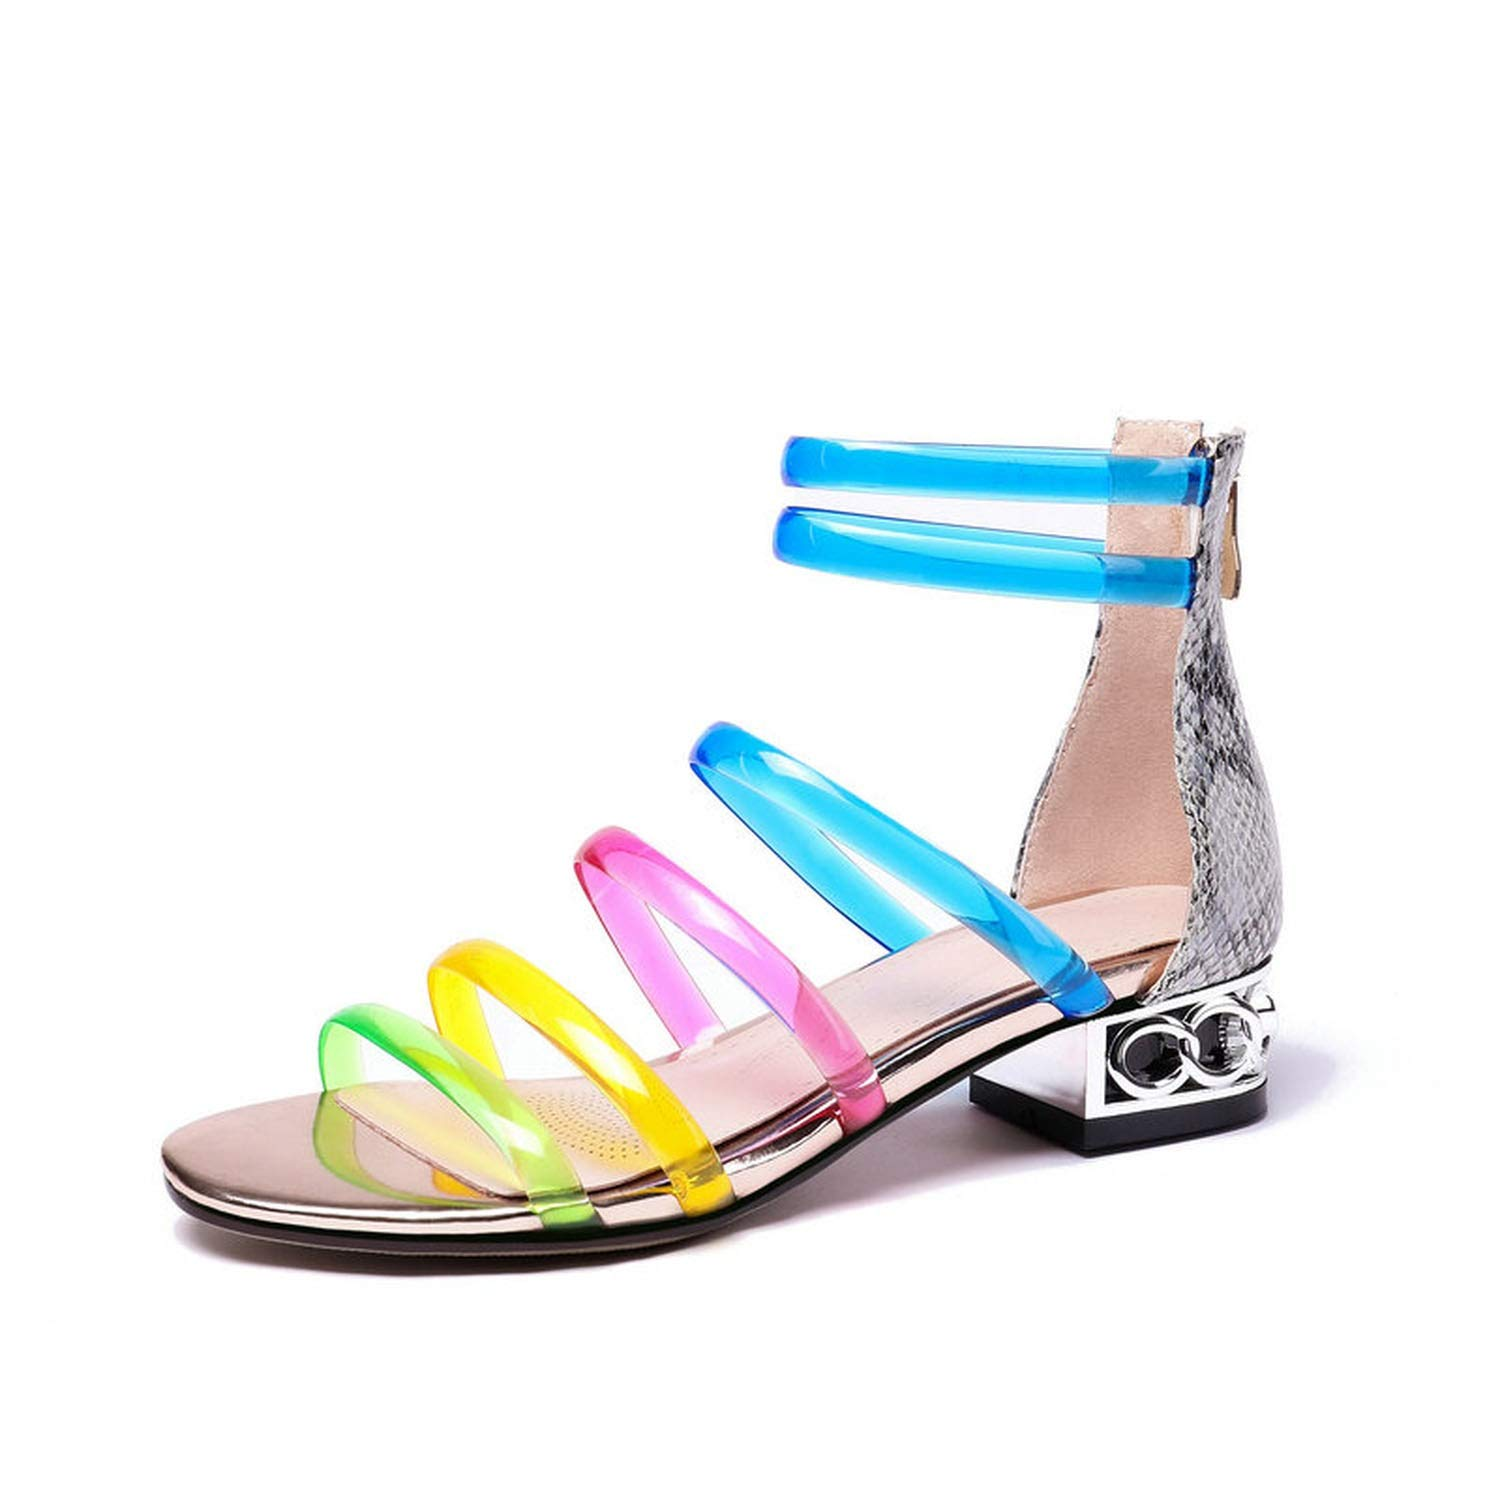 Blue Skieses 2019 Fashion Leather Gladiator Sandals Women Transparent PVC Colors Square Low Heels Summer Shoes